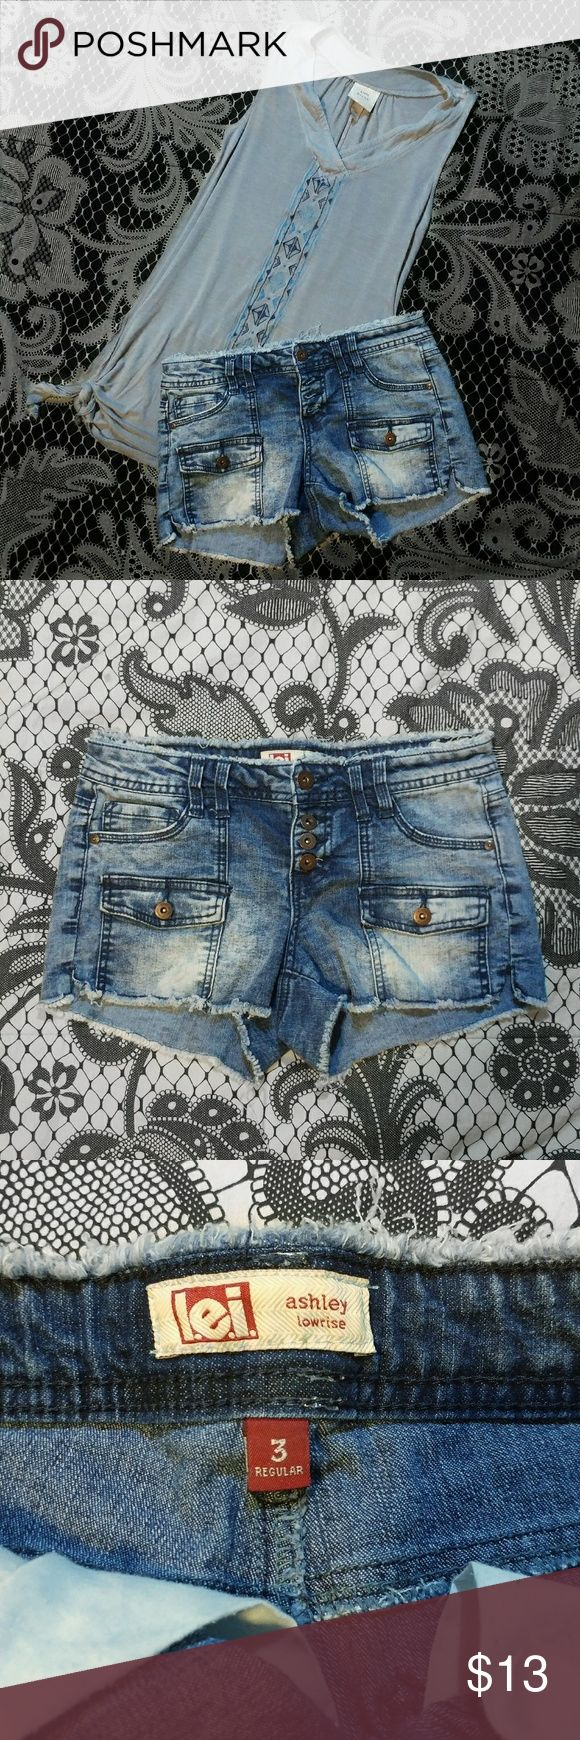 l.e.I.   Ashley Lowrise Acid Wash Shorts These pre-owned shorts are in excellent condition. They feature a full button up design (4 buttons), functional belt loops and super cool pockets in the front! Size 3 Regular.  ❇5 Star Top Rated Seller ⭐⭐⭐⭐⭐ ❇Make an offer  ❇Create a bundle and get 15% off  ❇Packaged With Care  & Speedy shipping ⚡ ❇Lets us know if you require more pictures or have any questions!  lei Shorts Jean Shorts